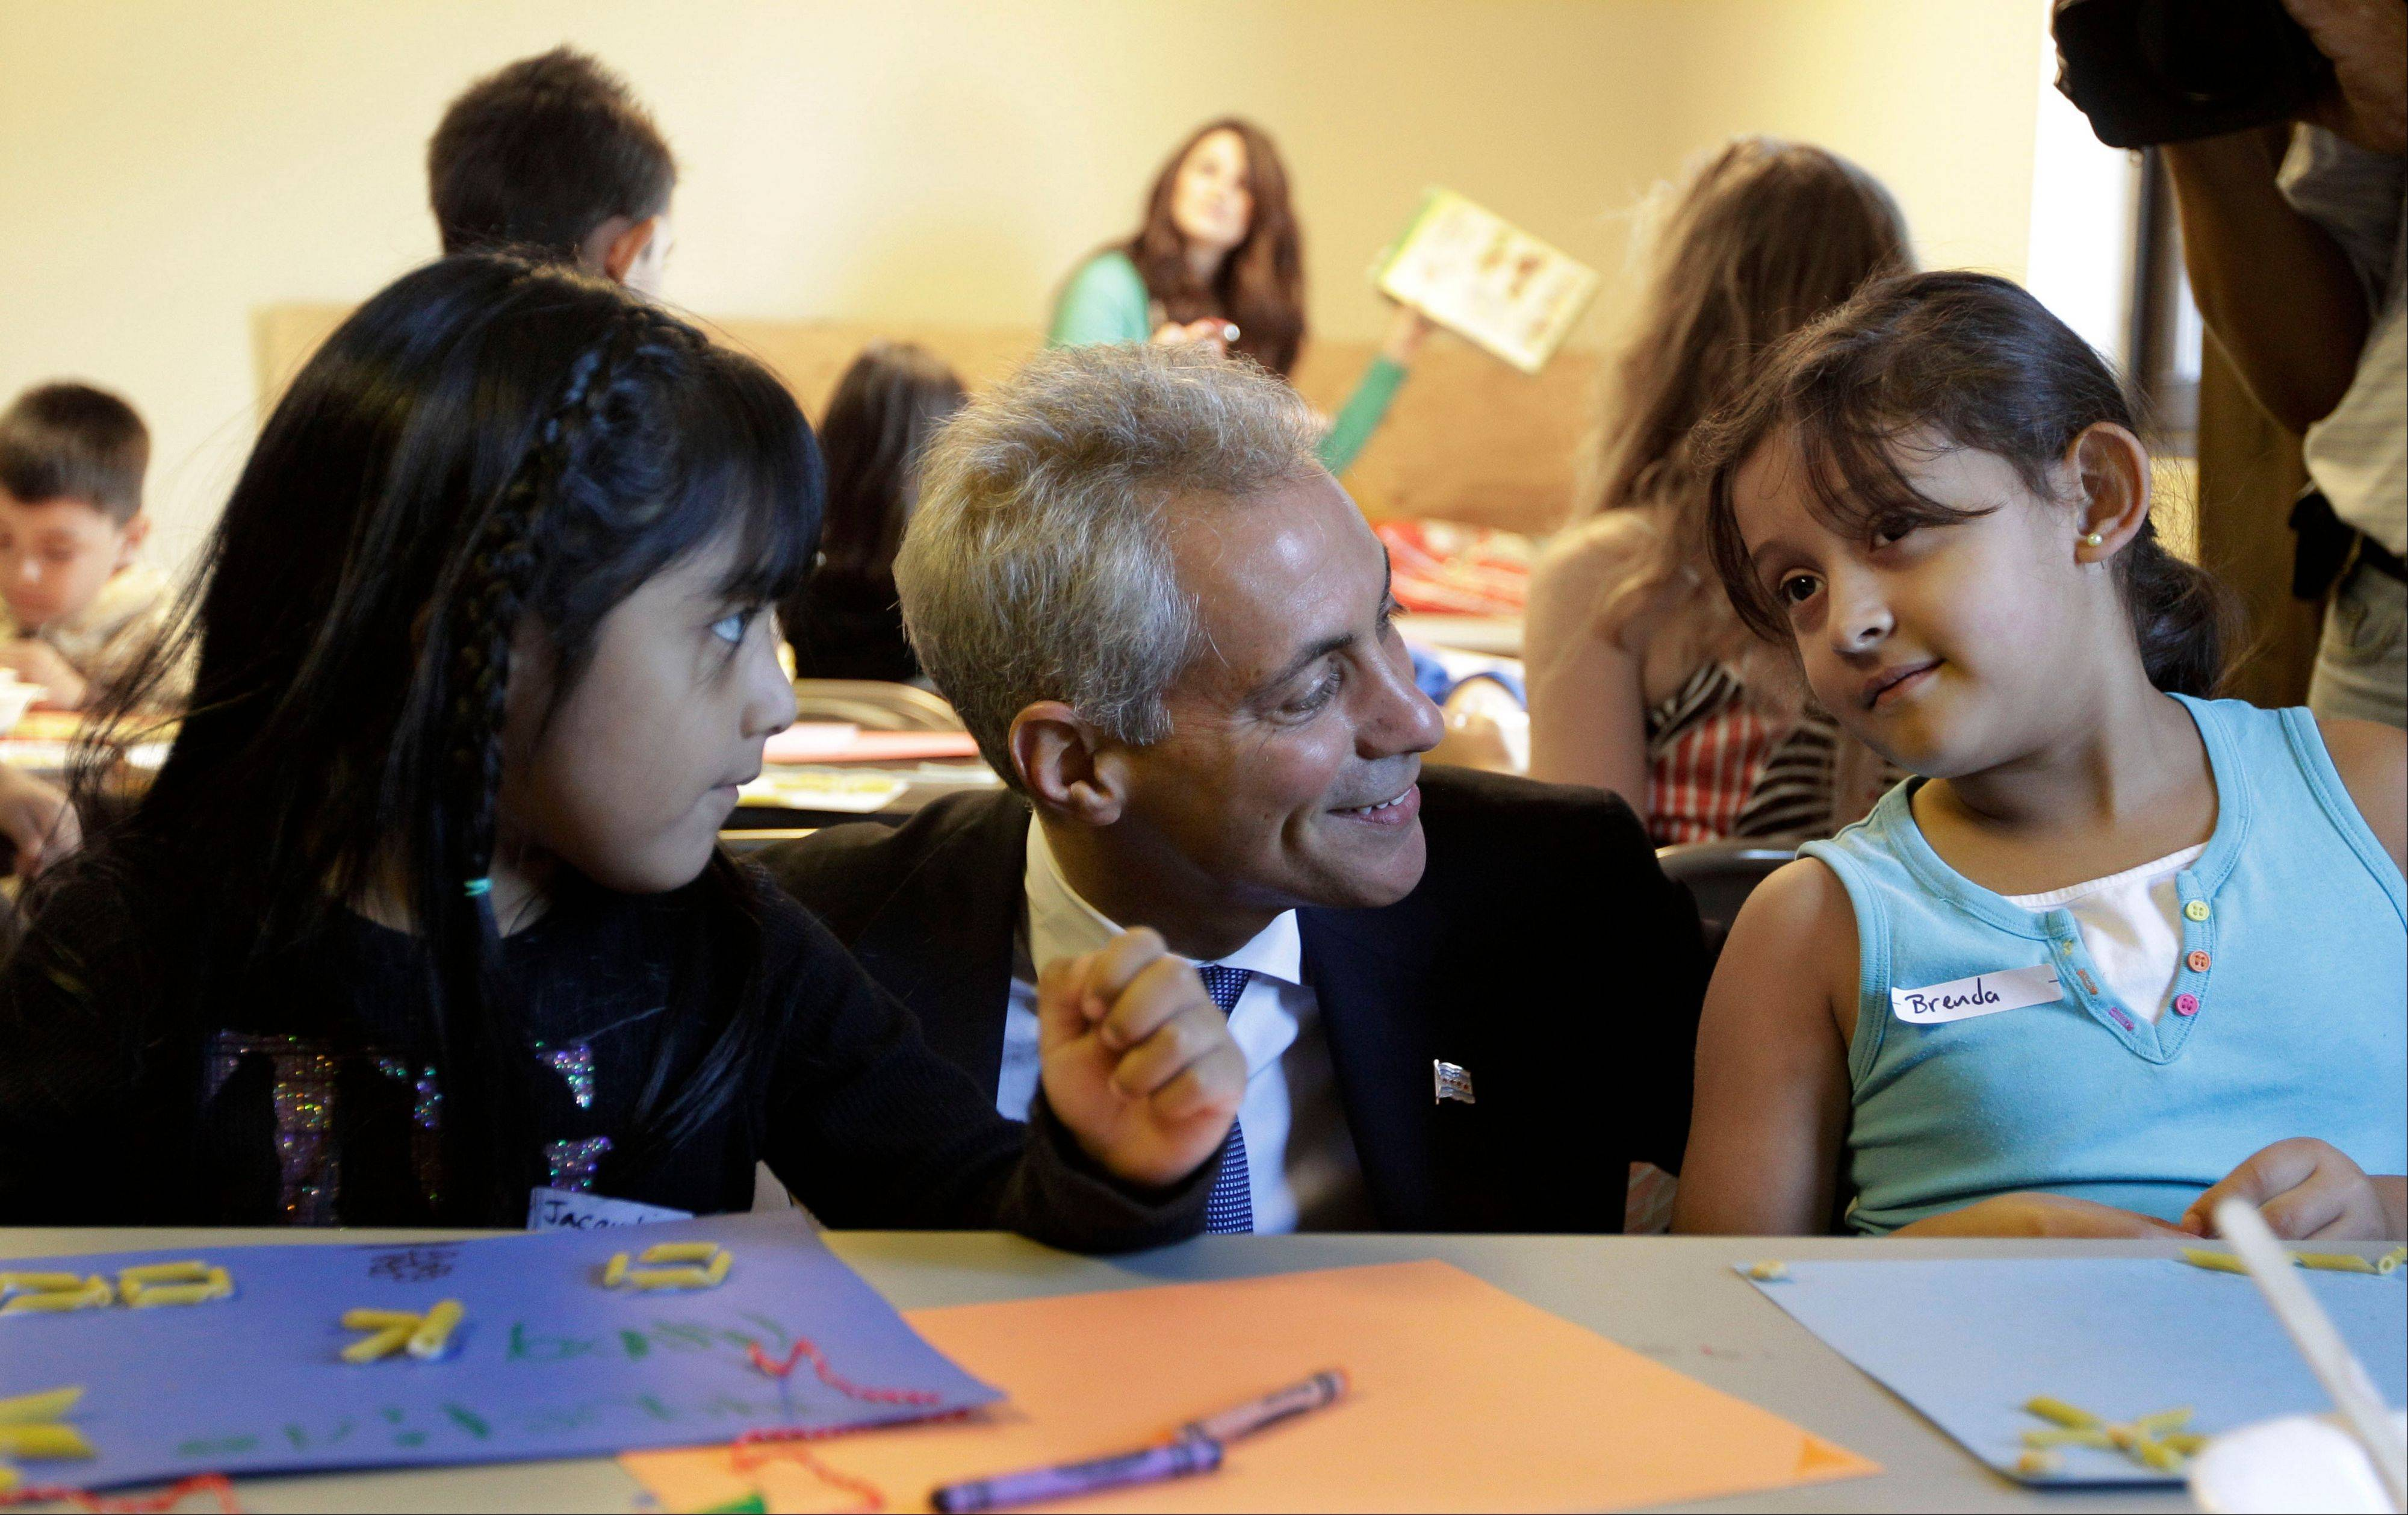 This Sept. 10, 2012, file photo shows Chicago Mayor Rahm Emanuel visiting with students at Maranatha Church in Chicago, where students were being provided structured activities during a teachers strike. Mayor Emanuel has said if the Illinois Legislature � which passed a historic measure last week to address the state�s worst-in-the-nation public pension shortfall � doesn�t deal with Chicago�s own multibillion-dollar pension problem next, city services could suffer in the future, with more teachers losing their jobs.